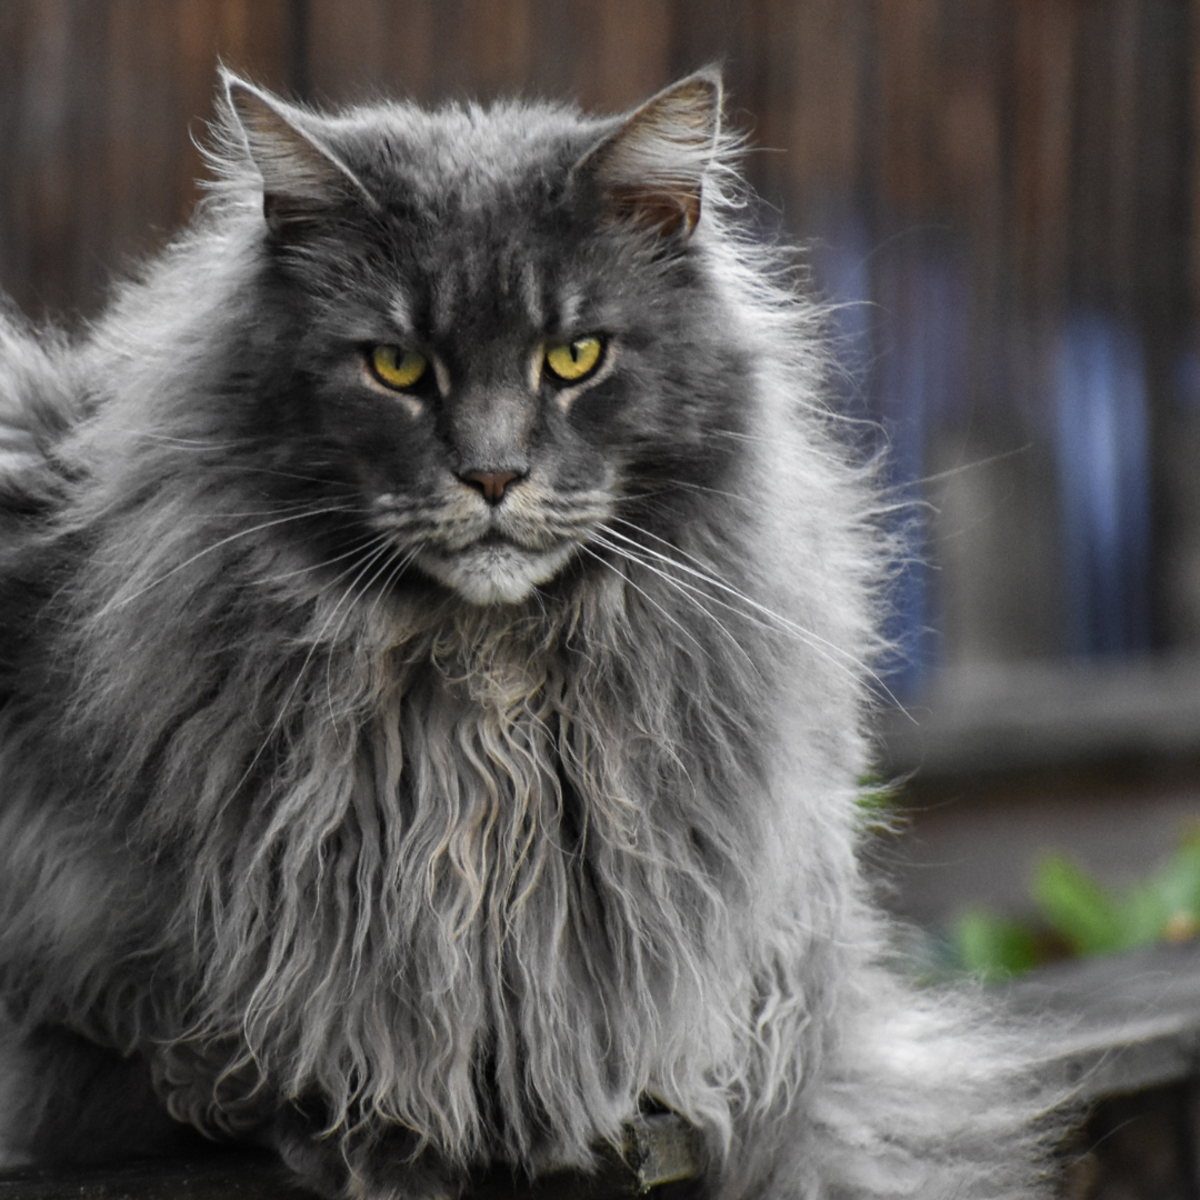 Longhair cats need to be combed often to prevent knots and hairballs.